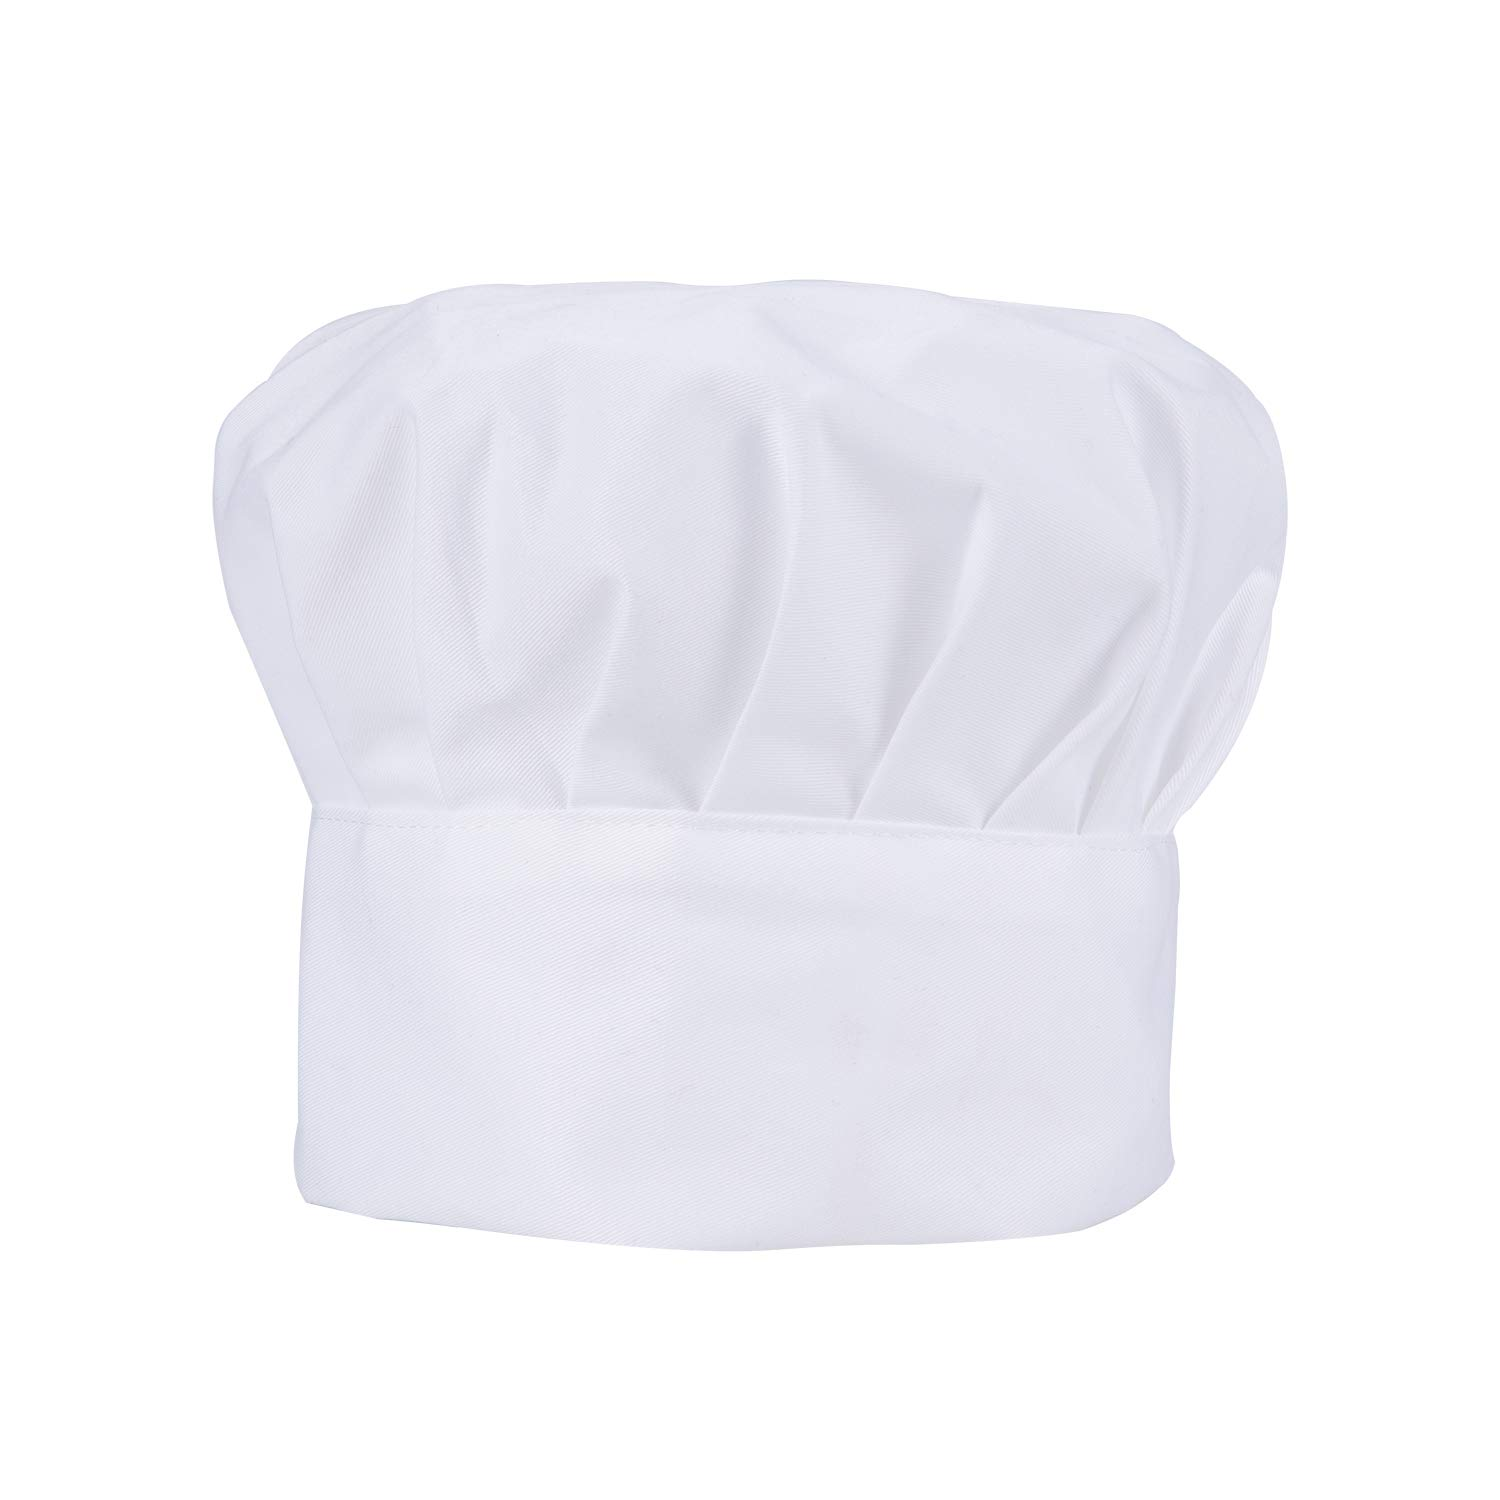 Homsolver 2 Pieces Chef Hat with Comfortable Durable Cotton Materials and Adjustable Size for Adults White